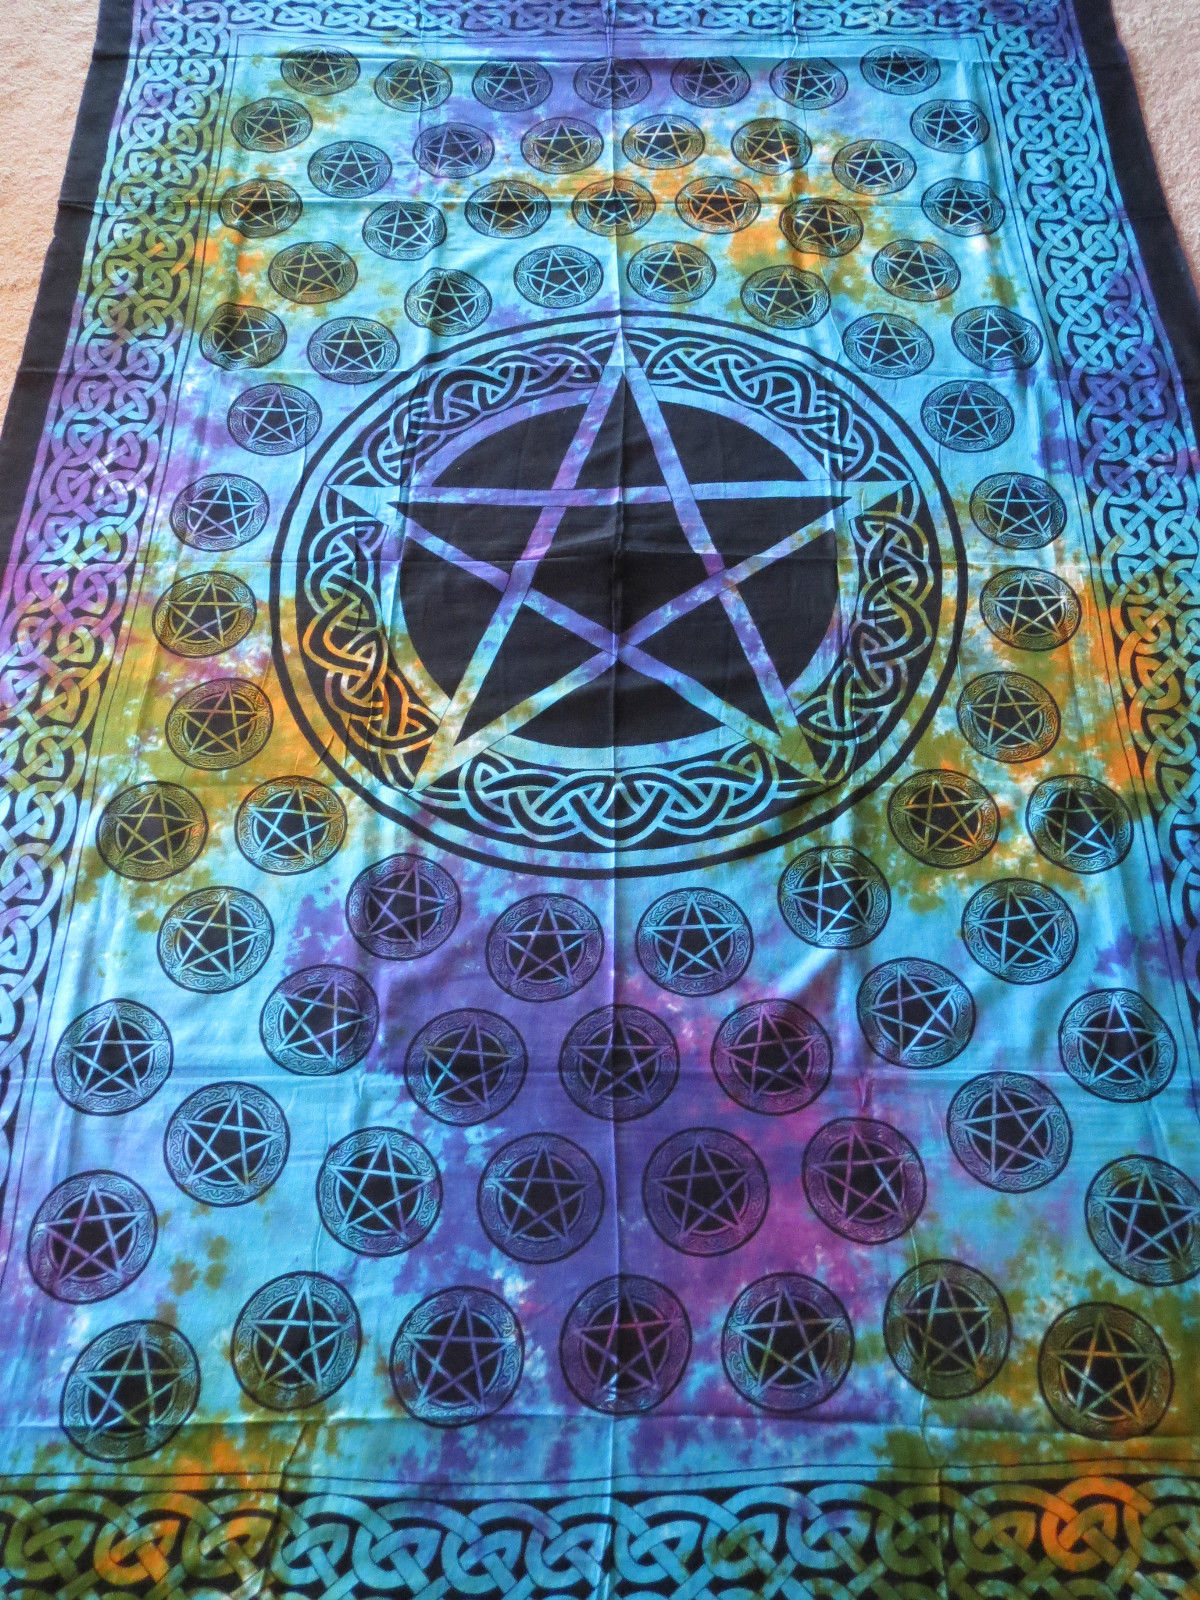 wicca pagan Learn about wicca, witchcraft, paganism, magick, spells & rituals, occult online source of wicca, wiccan information and a comprehensive wicca, wiccan, witchcraft ebooks & software.